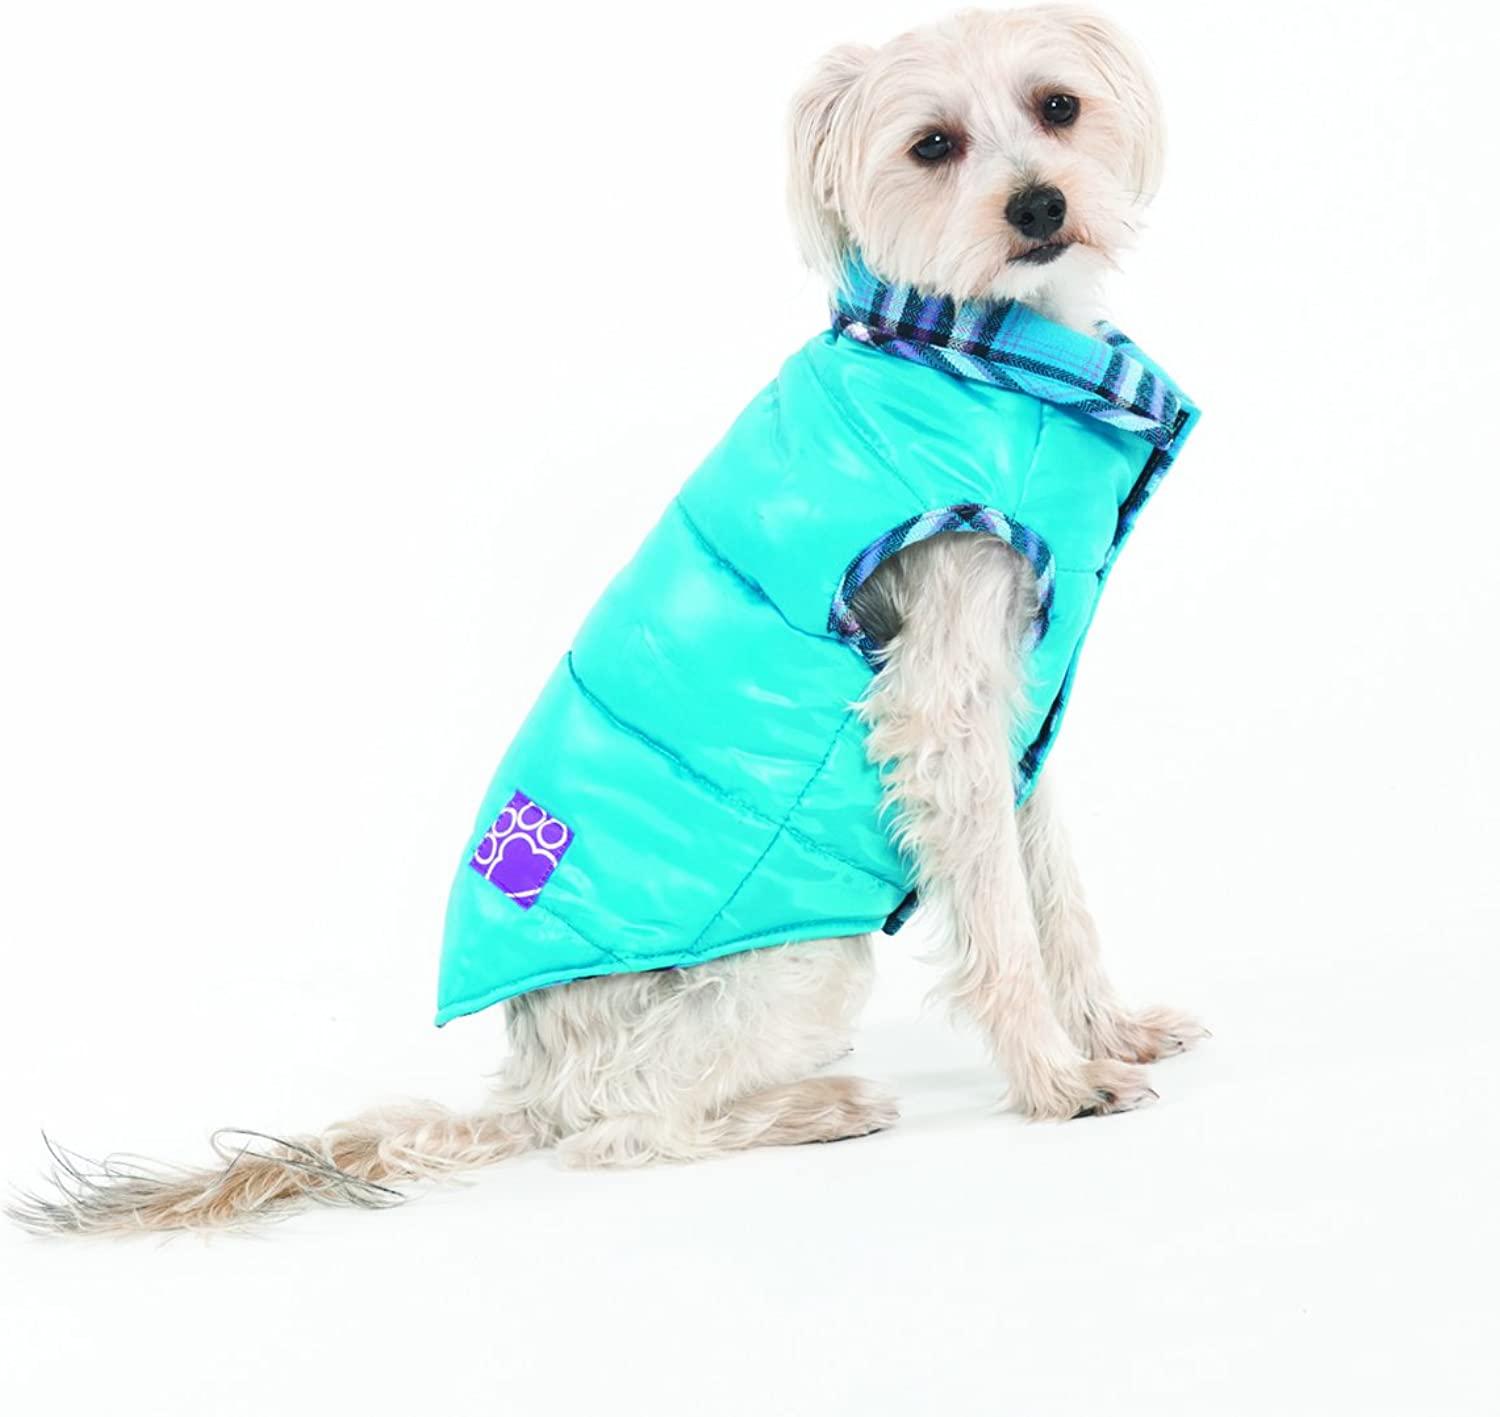 Fashion Pet Lookin Good Reversible Puffy Vest for Dogs, Small, Turquoise